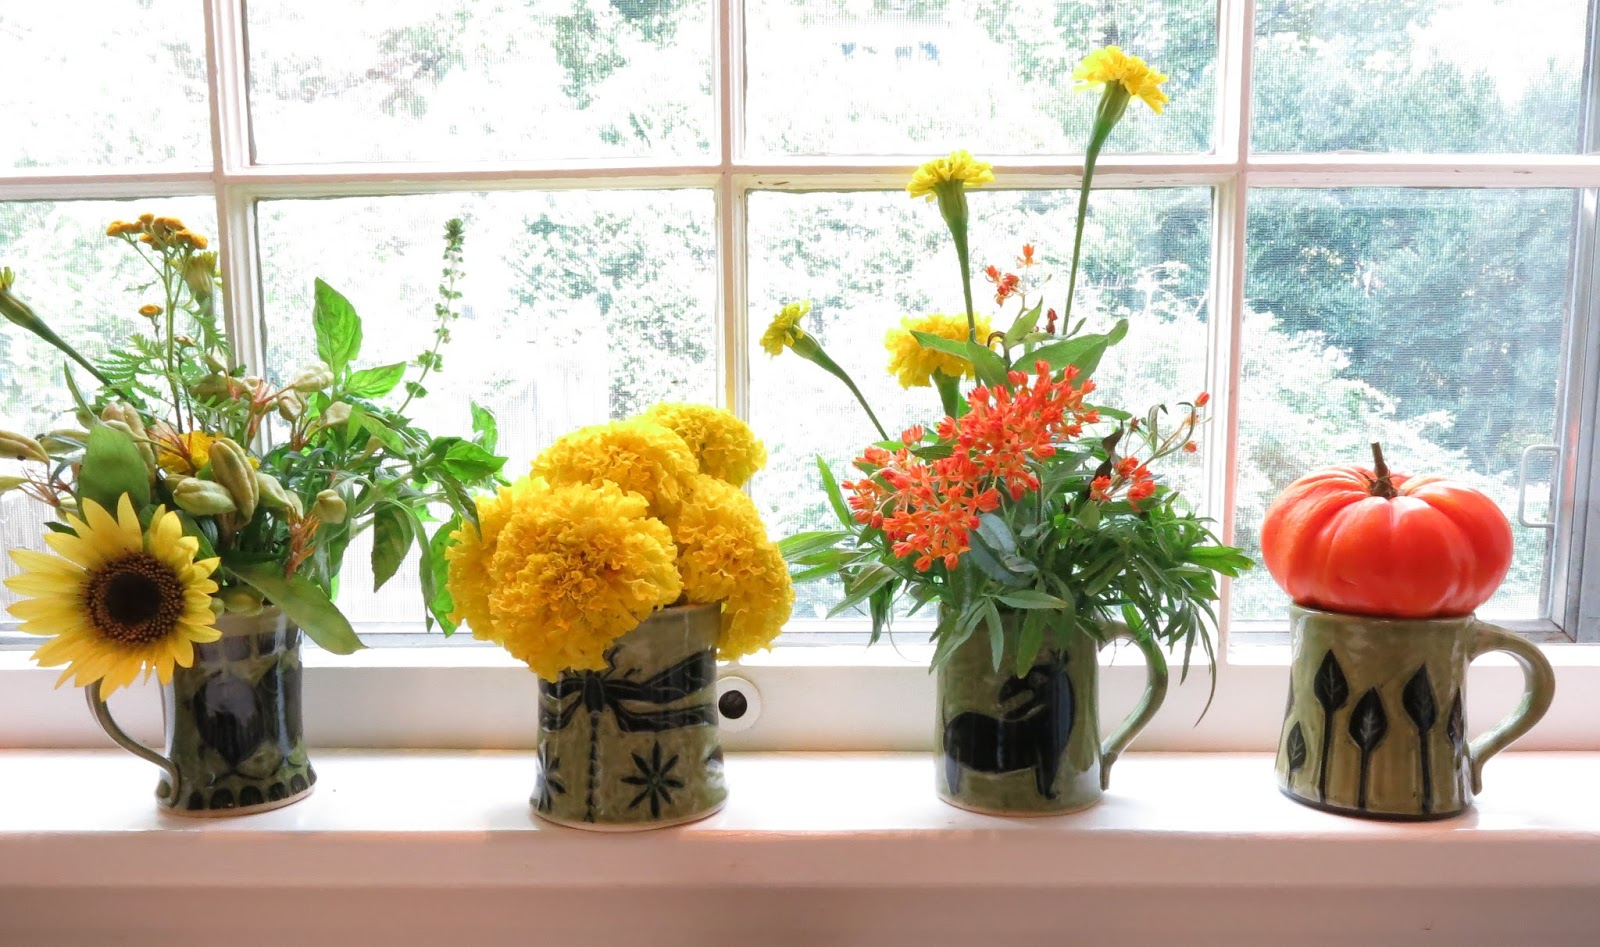 Included In The Mugs Are From Left To Right 1 Sunflower Blackberry Lily Pods Marigolds Basil 2 Giant Yellow Marigold Flowers 3 Orange Erfly